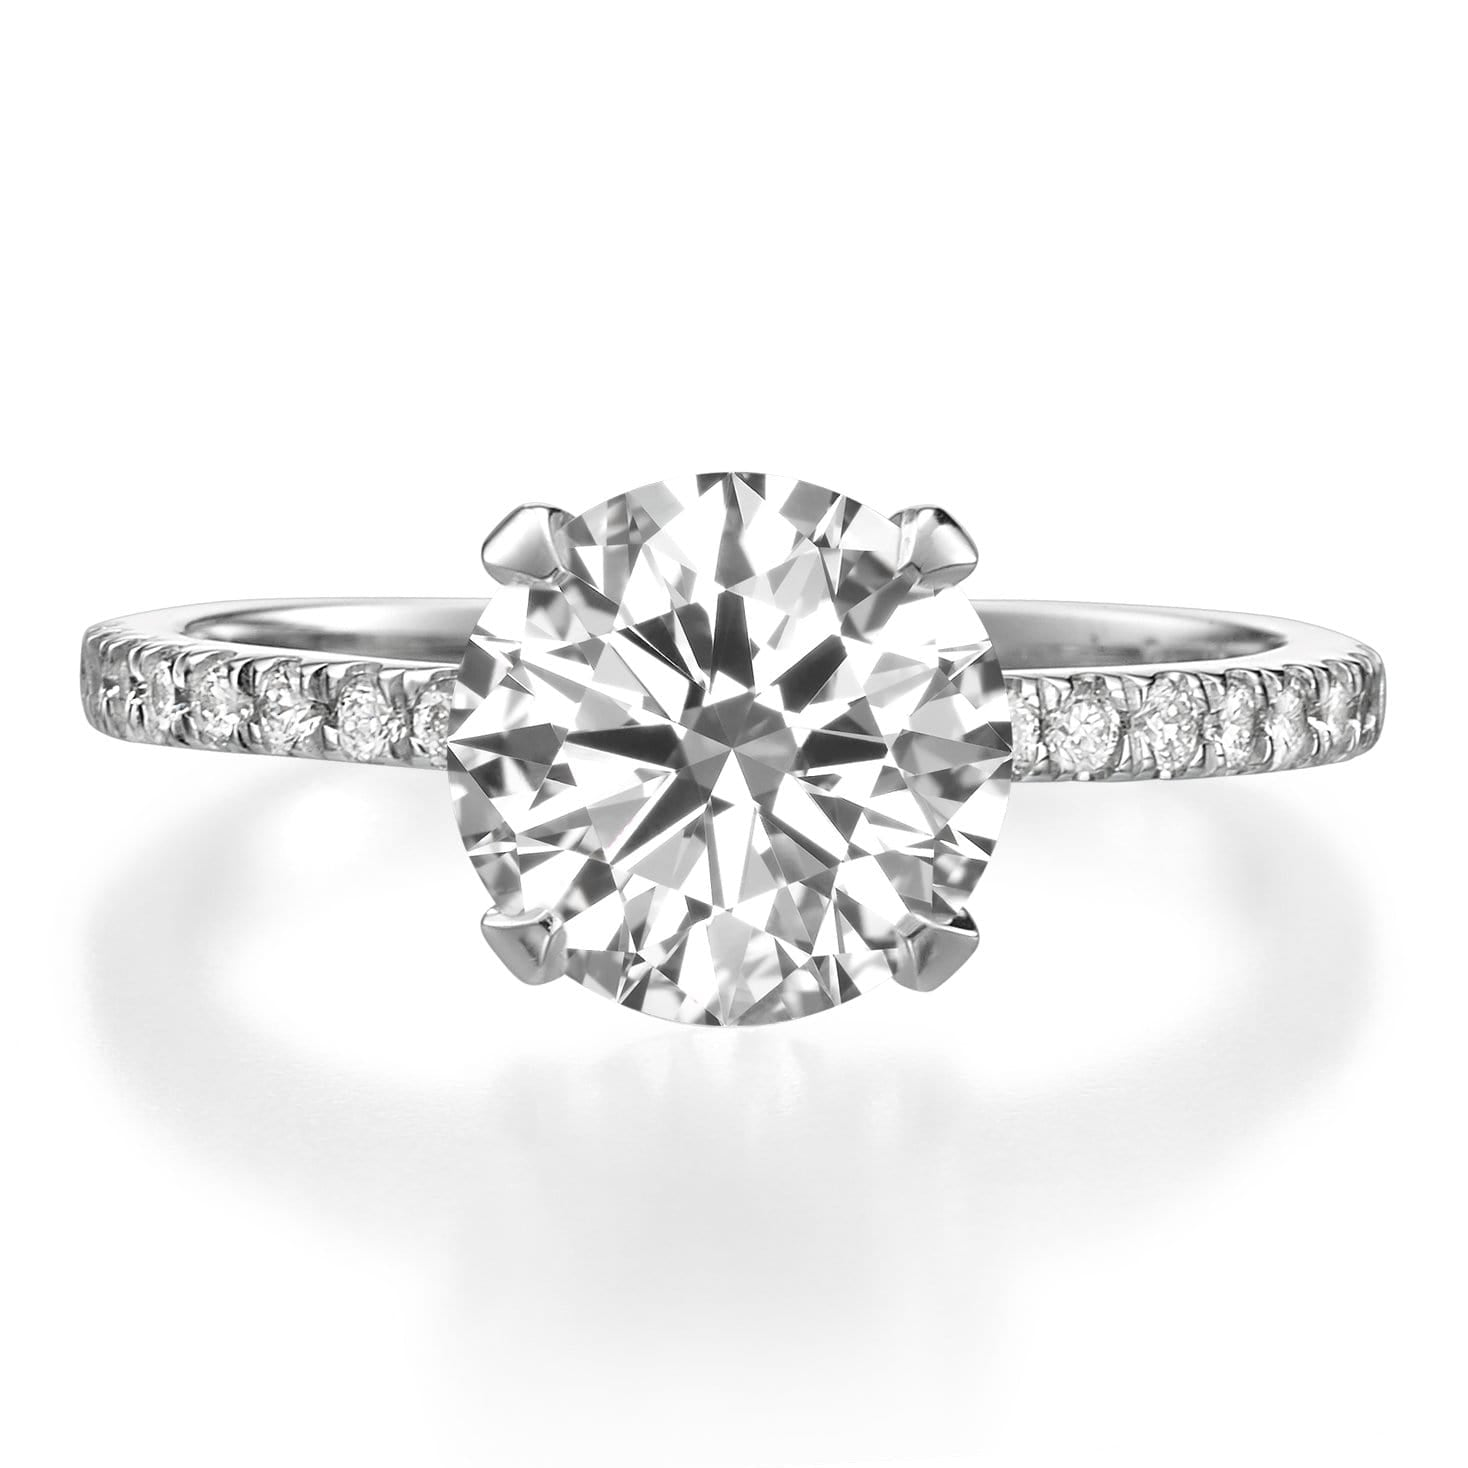 2.31 ct Round Brilliant Cut Diamond Engagement Ring